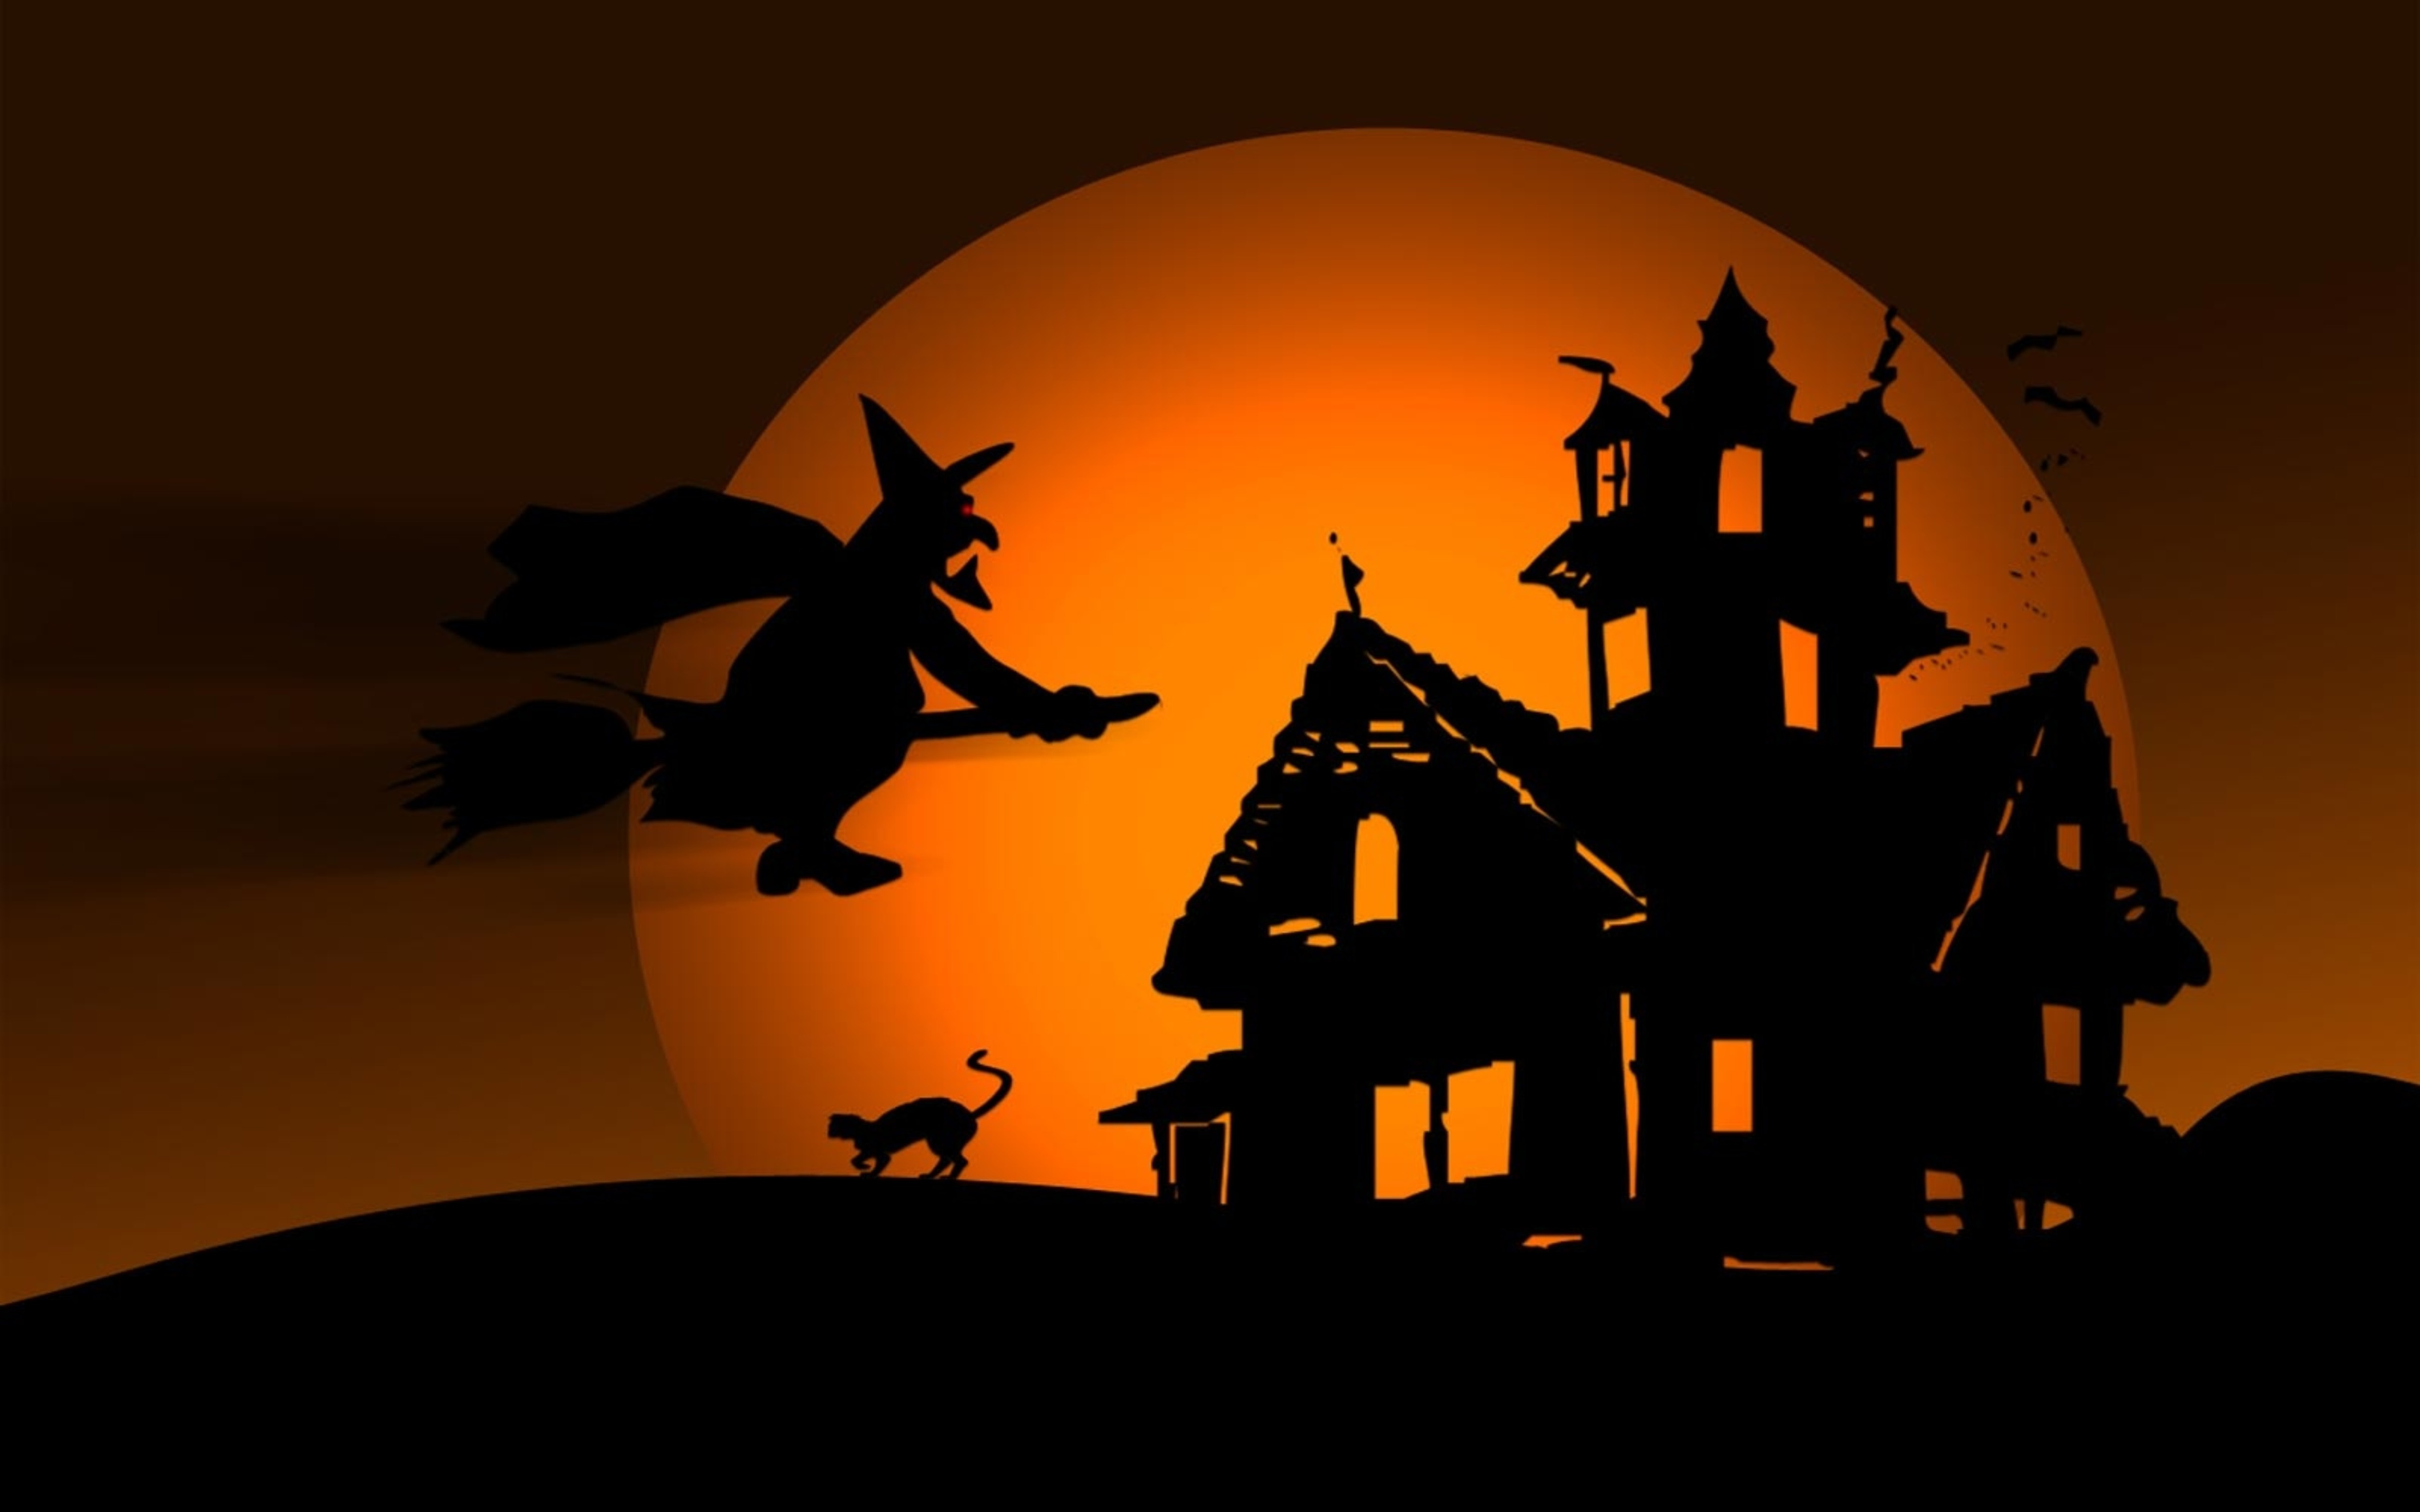 Witch in the Halloween night   HD wallpaper 5120x3200